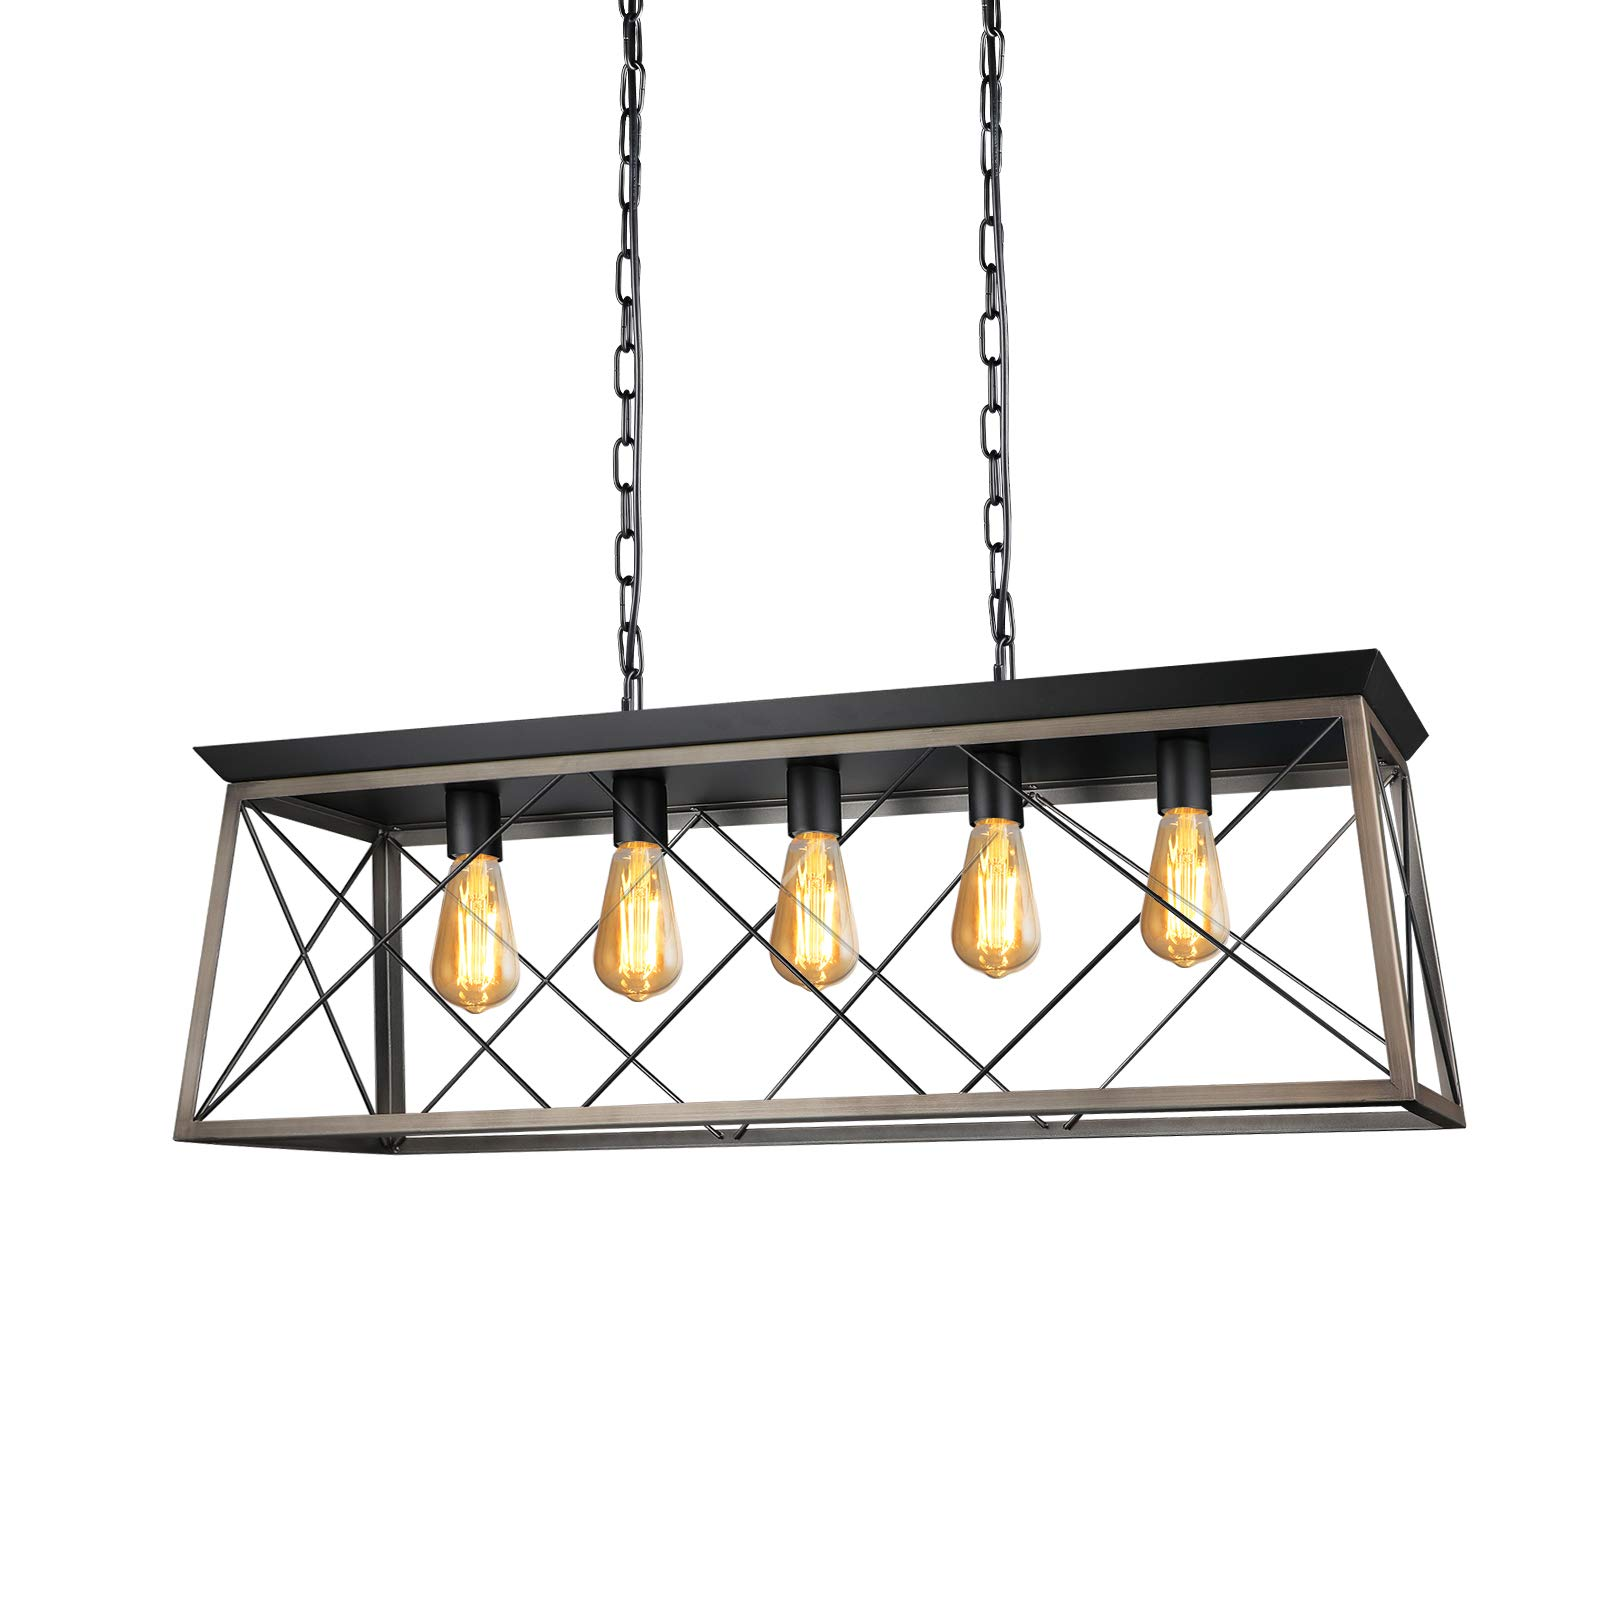 Paragon Home 5-Lights Rectangle Rustic Metal Pendant Light, Modern Linear Island Ceiling Lighting Fixture Industrial Pendant Lights for Dining Room Kitchen Living Room, E26 Base (Bulbs Not Included) by Paragon Home (Image #3)